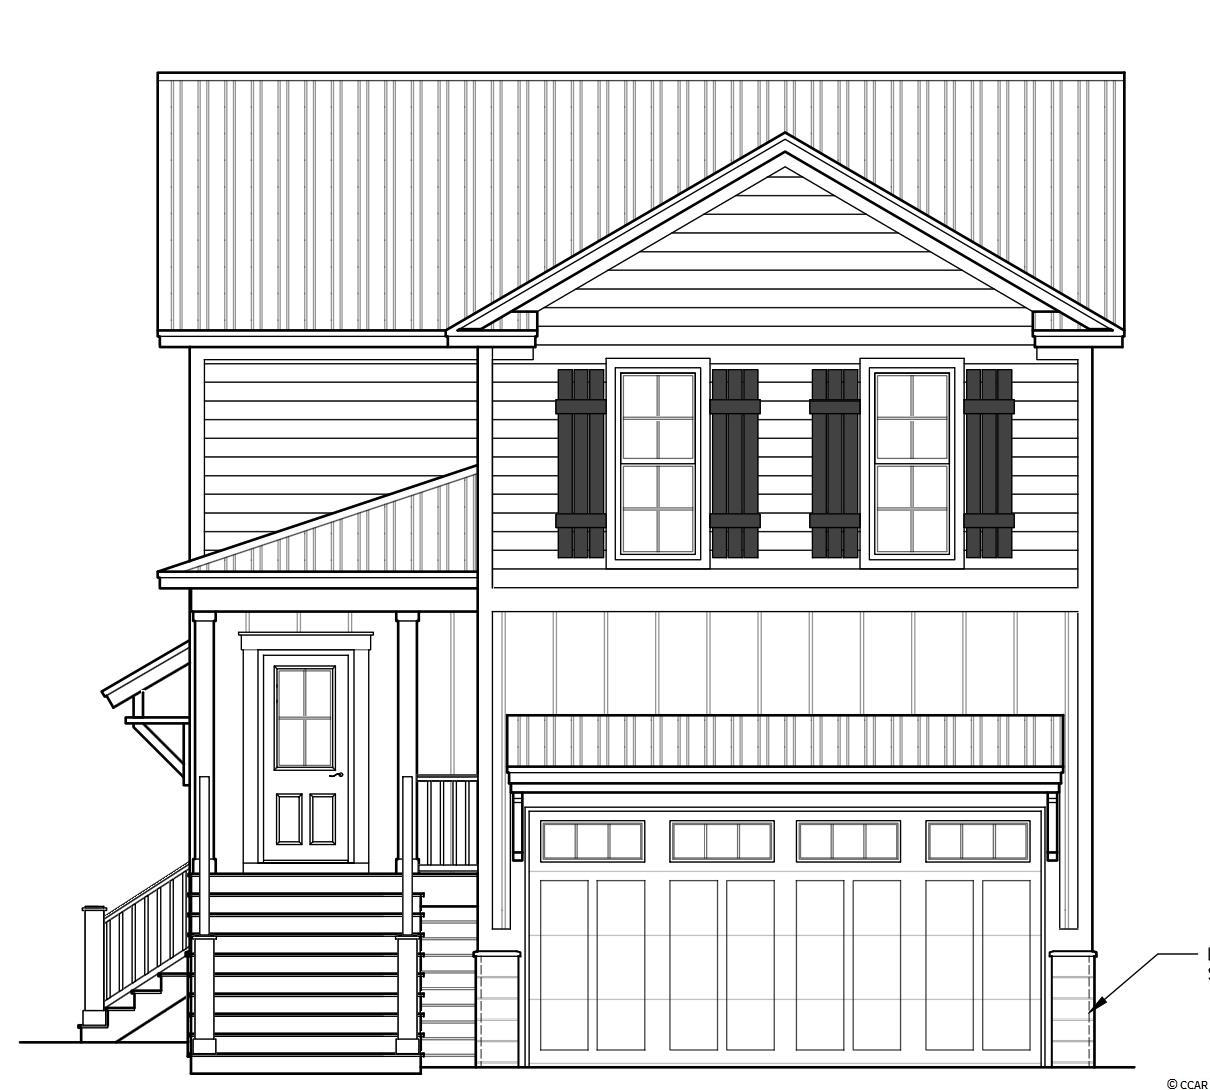 Great home starting soon in Marshland Park.  This 3 bedroom open floor plan on Sunrise View has all the finishes you are looking for.  Custom cabinets, solid surface counters, LVP flooring, Hardie plank siding, tankless water heater, etc.  HOA cuts your grass.  We are running low on inventory so call today!  Pictures are of a similar model.